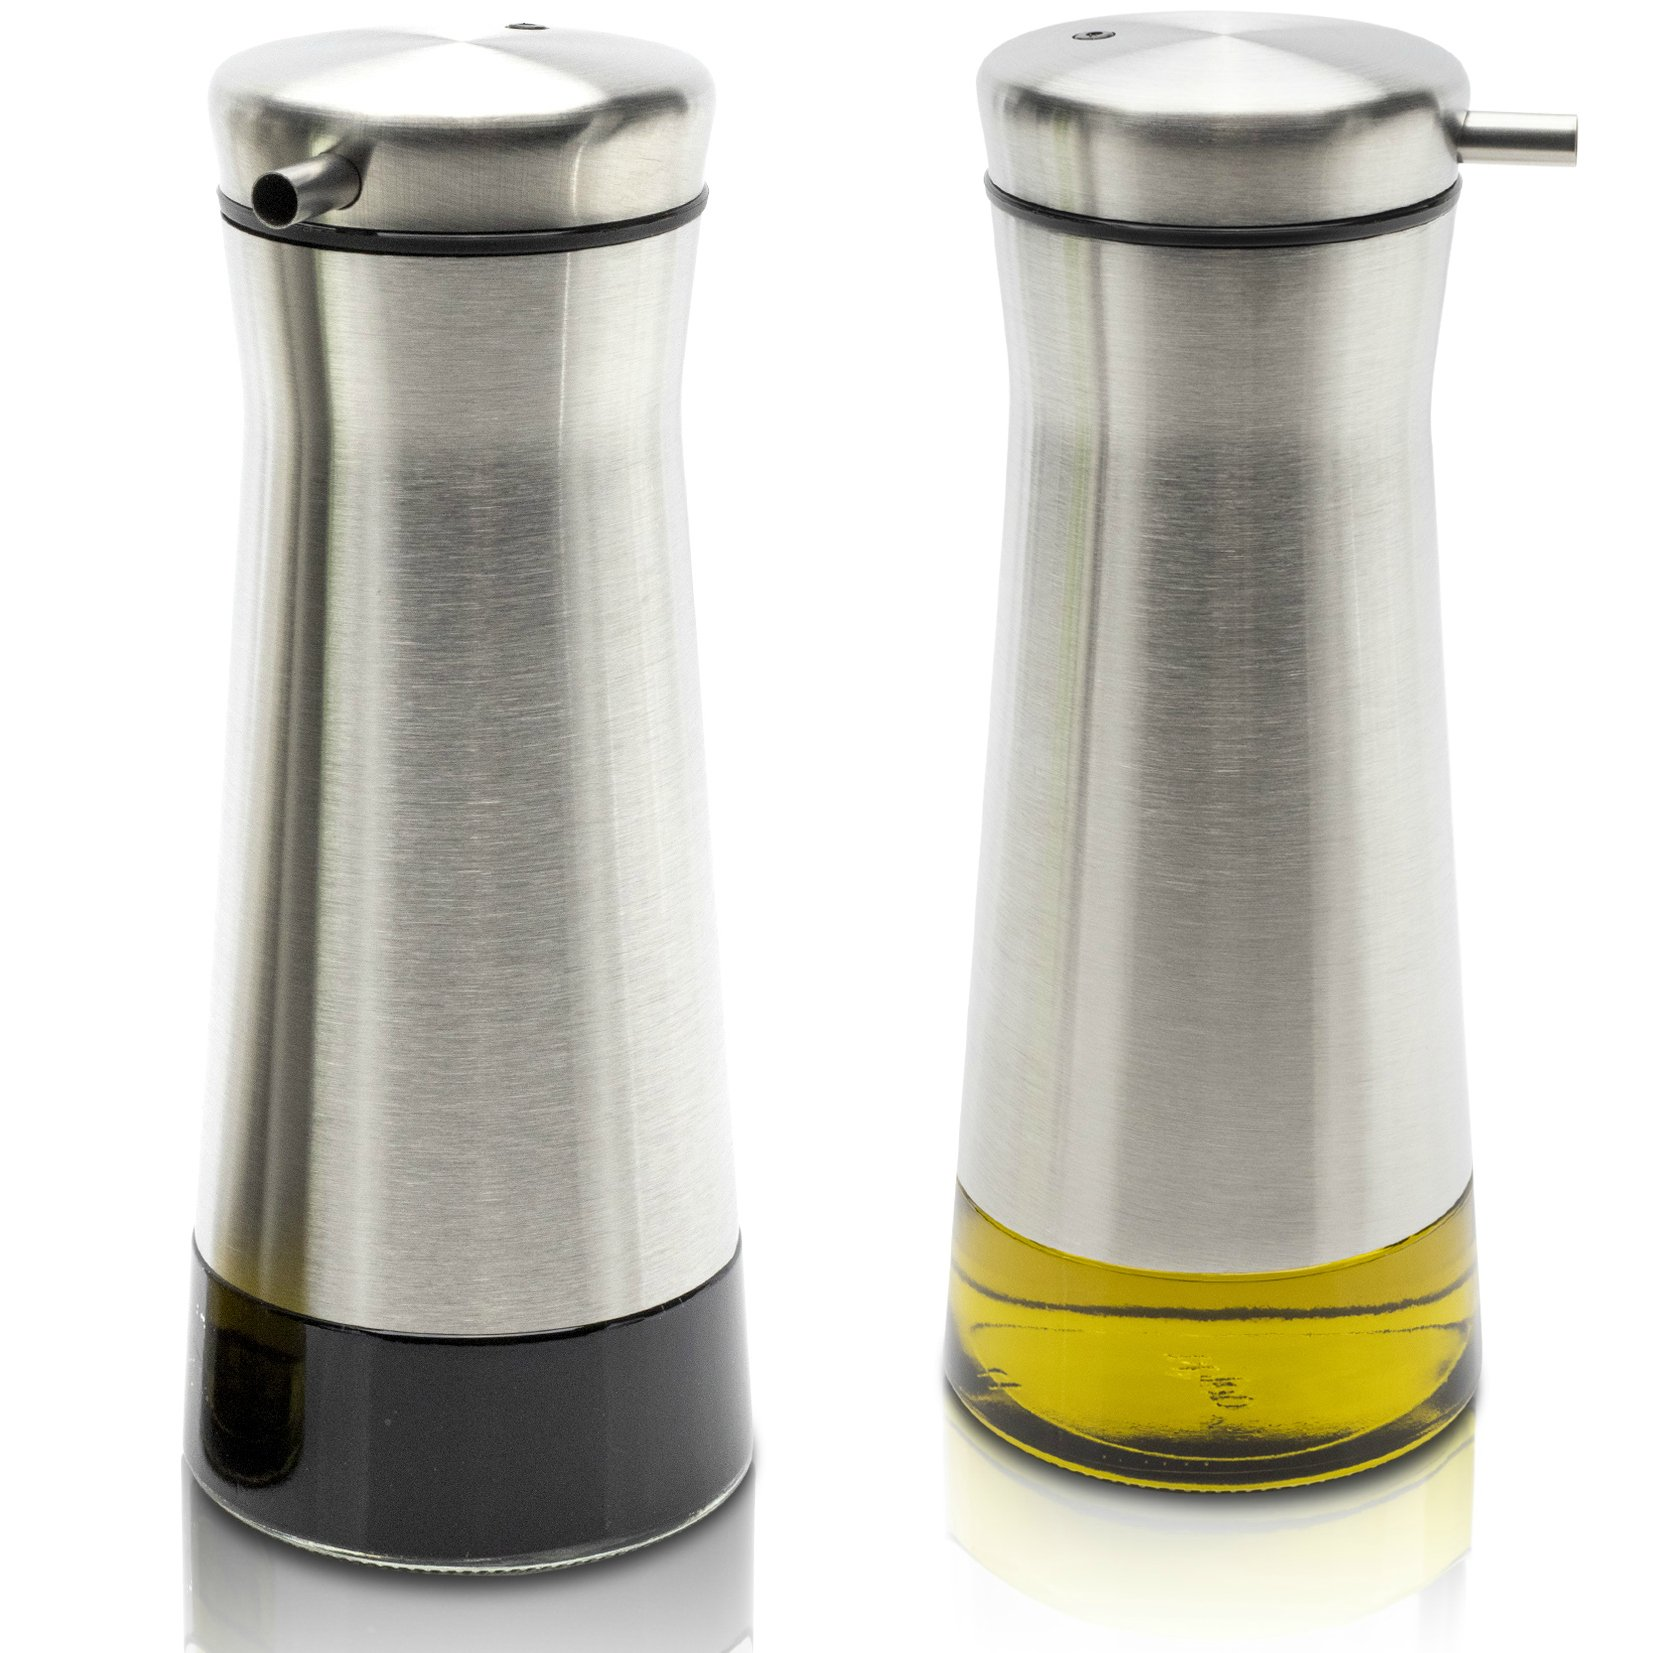 Elegant Olive Oil And Vinegar Dispenser - Stainless Steel Set of 2 - Gorgeous Oil Container Cruet Set Guarantees Easy & Drip Free Pouring